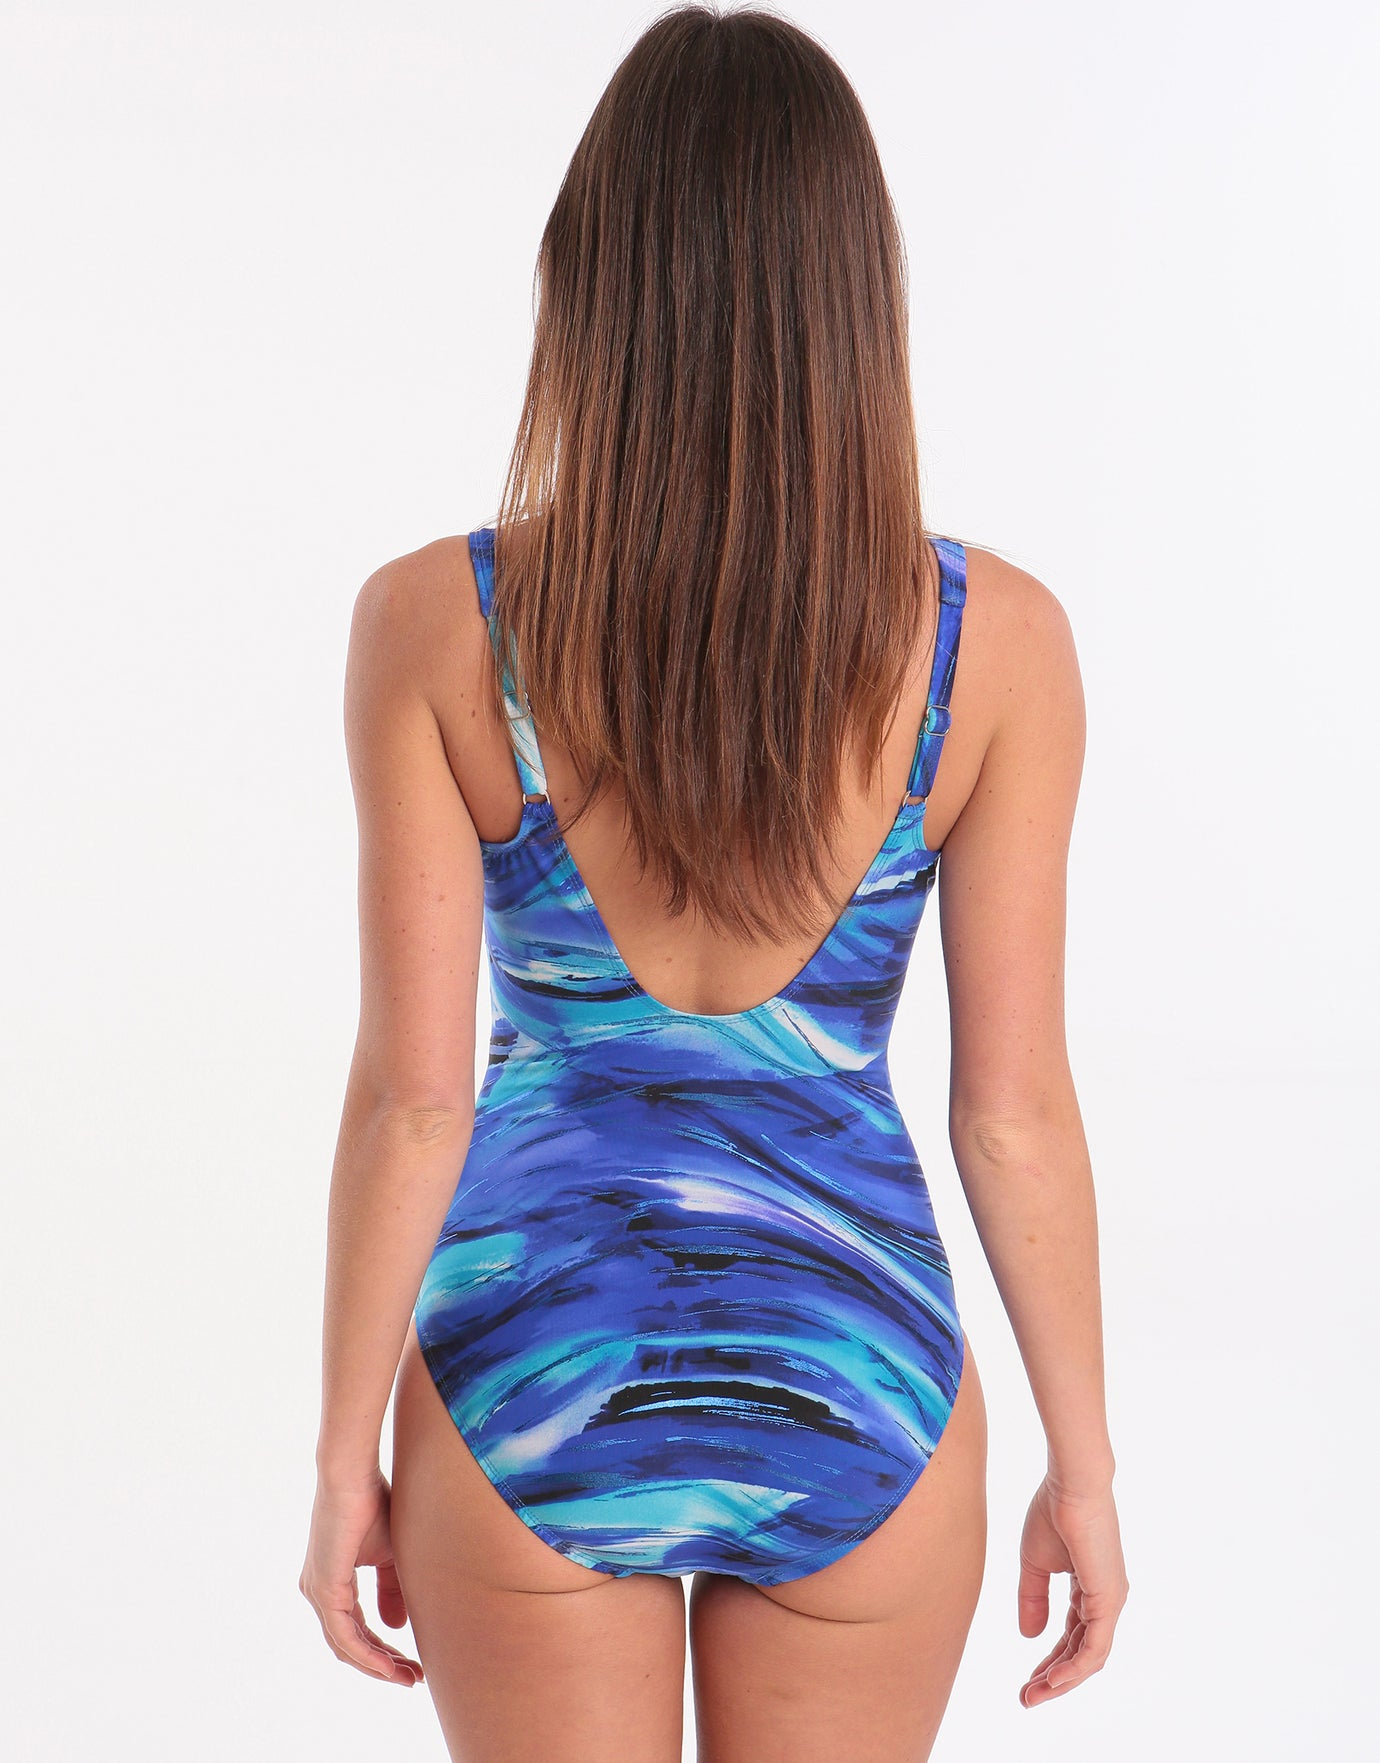 Miraclesuit The Breakers Sanibel Swimsuit - Blue